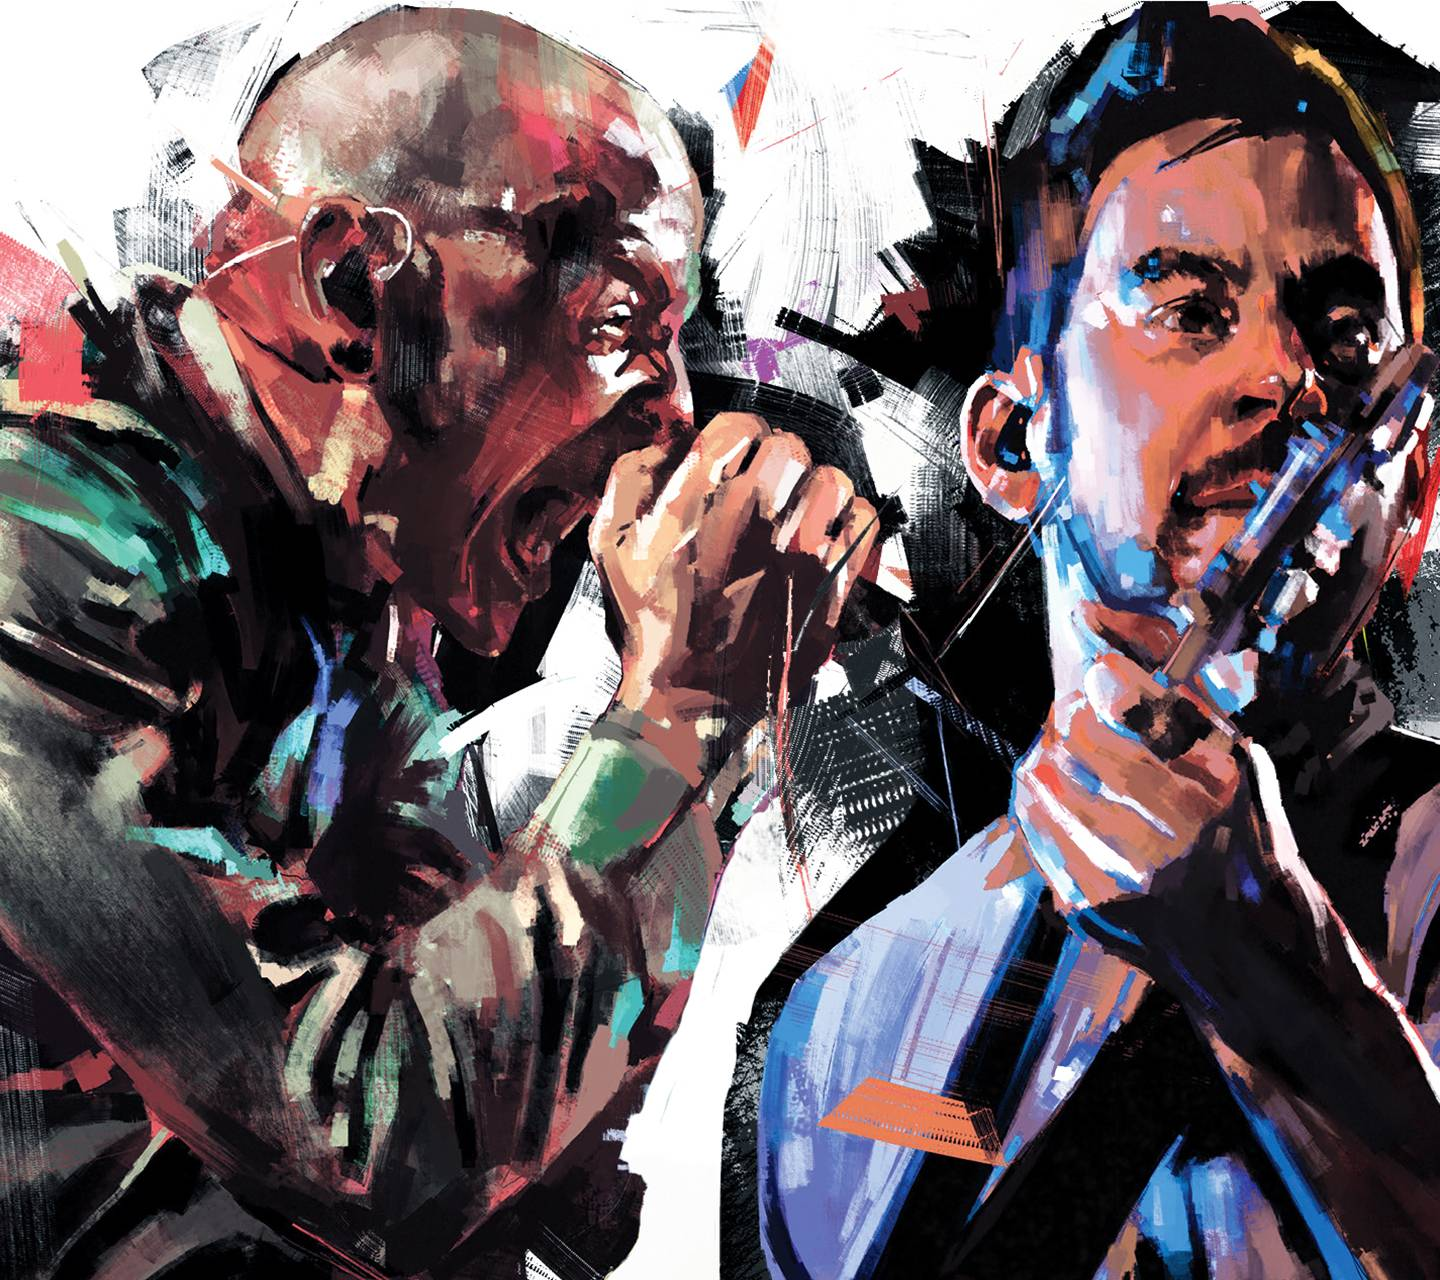 Linkin Park Wallpaper By Kirill2812 2a Free On Zedge